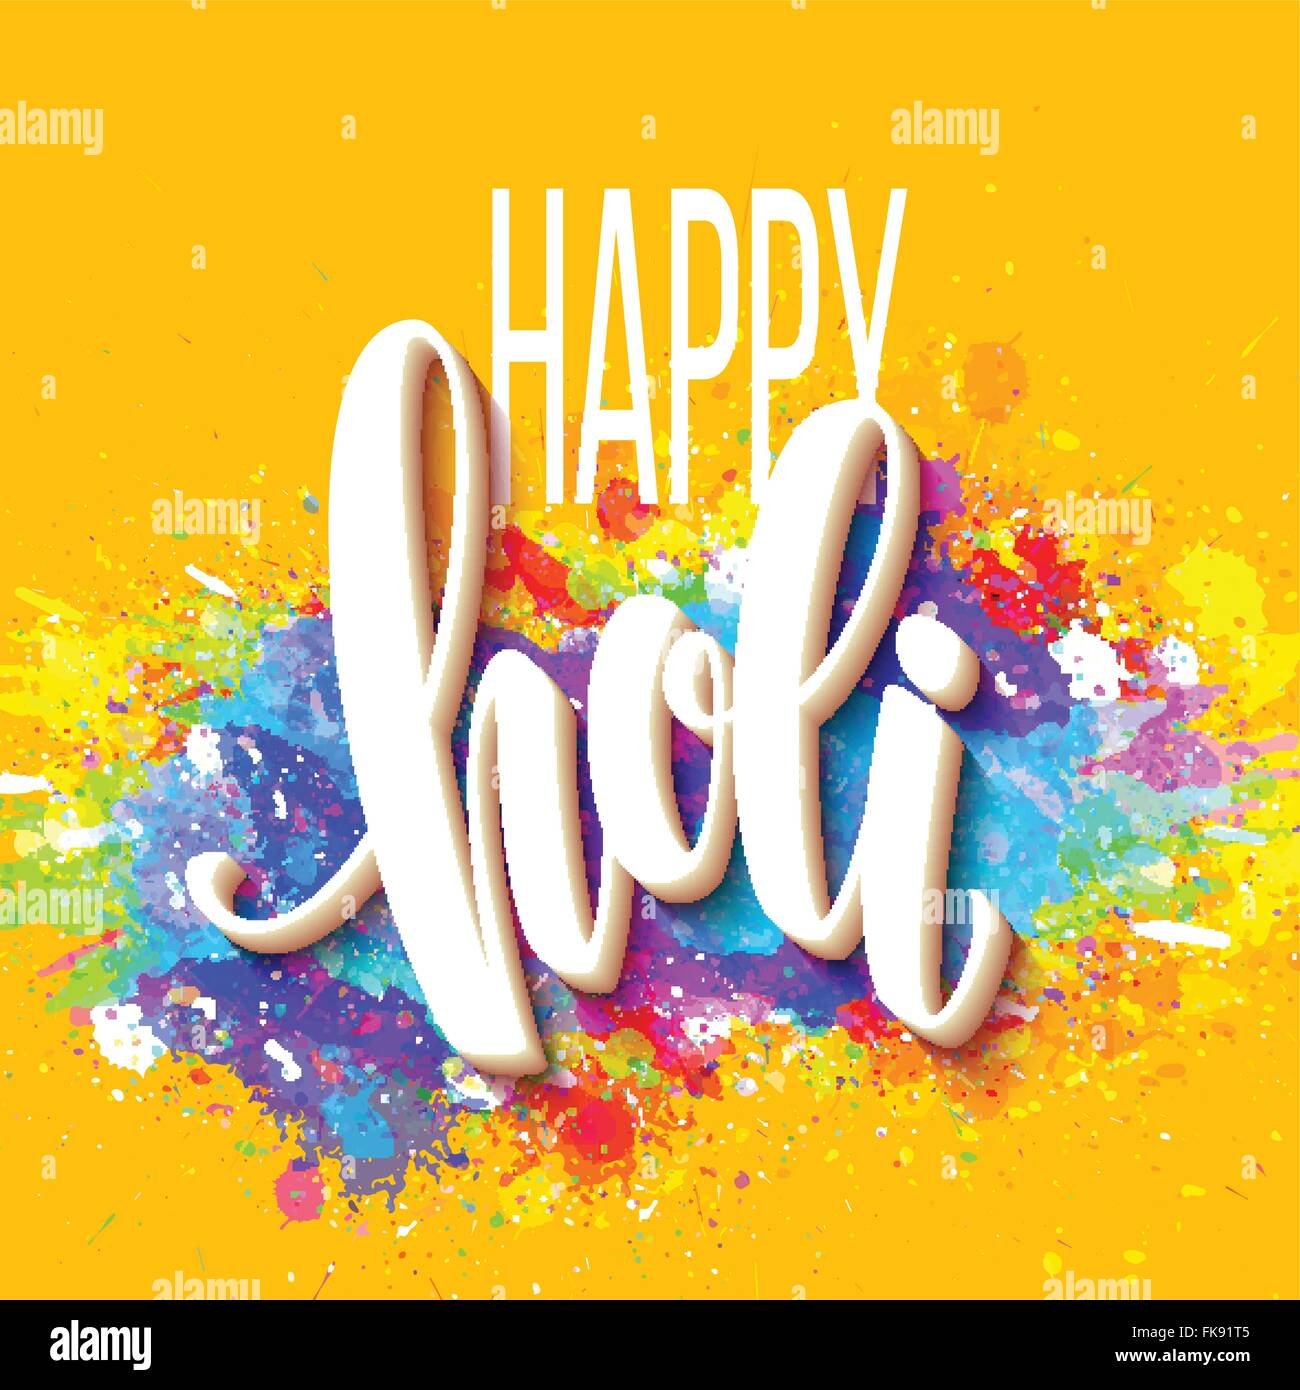 Happy holi festival of colors greeting background with colorful happy holi festival of colors greeting background with colorful holi powder paint clouds and sample text vector illustration kristyandbryce Image collections